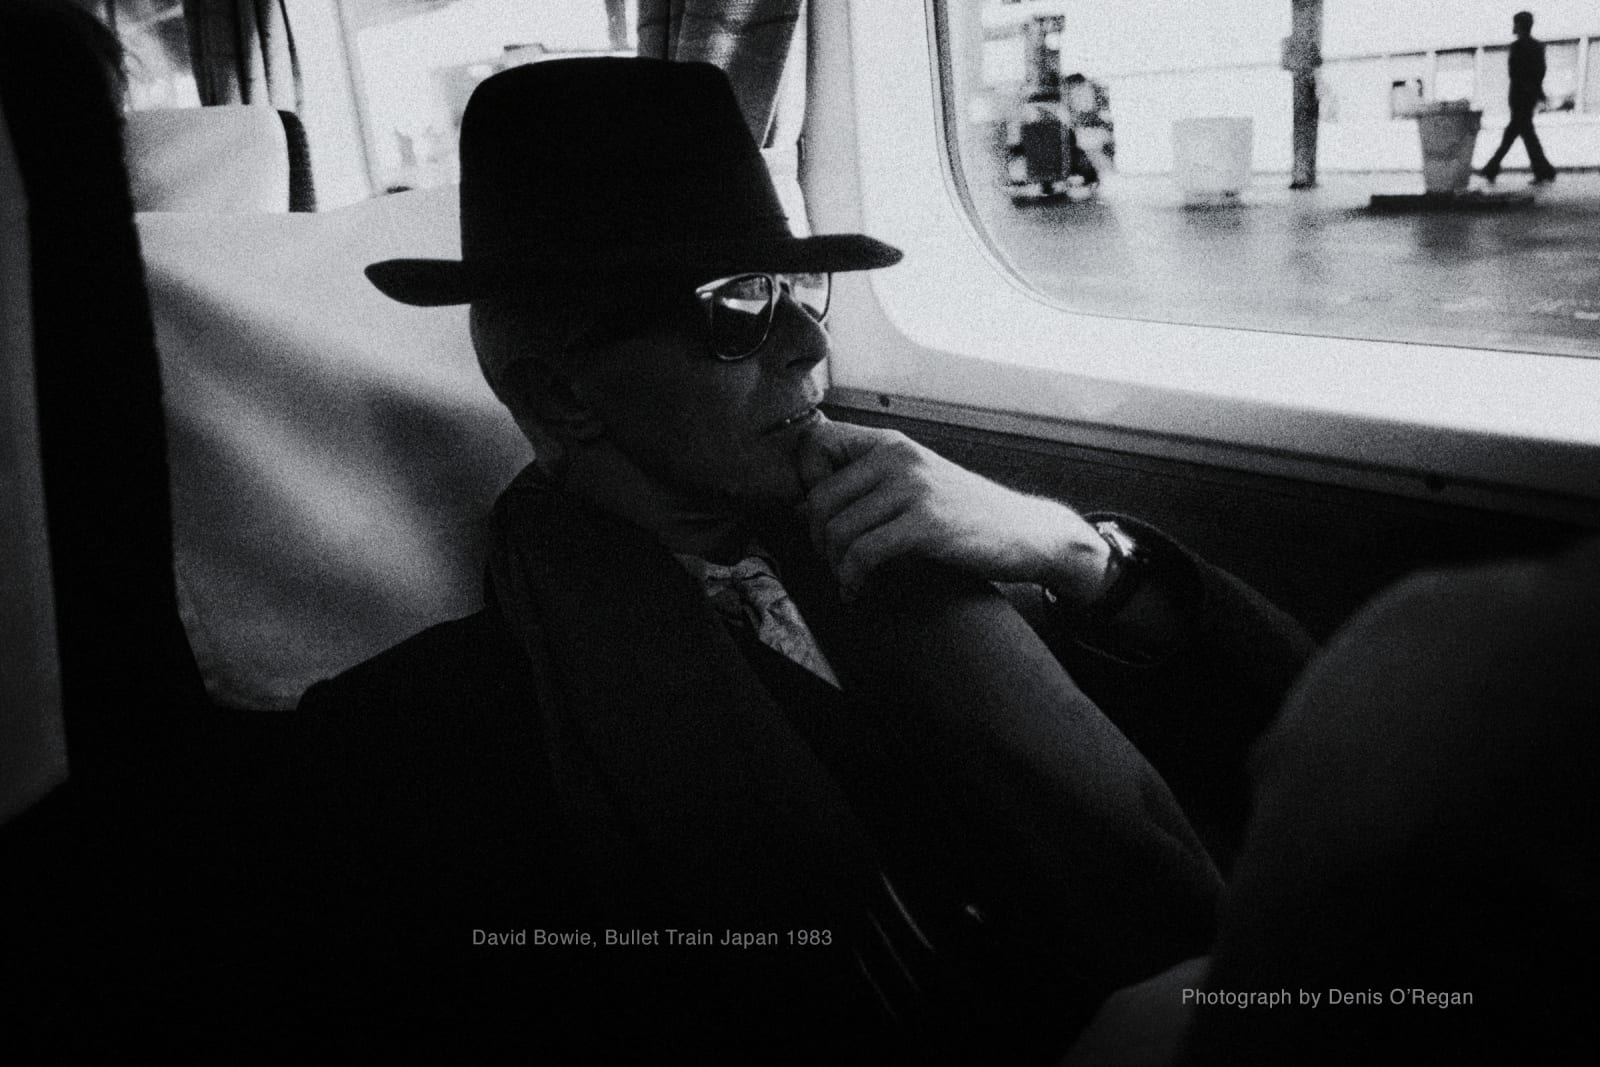 DAVID BOWIE, David Bullet Train Japan, 1983